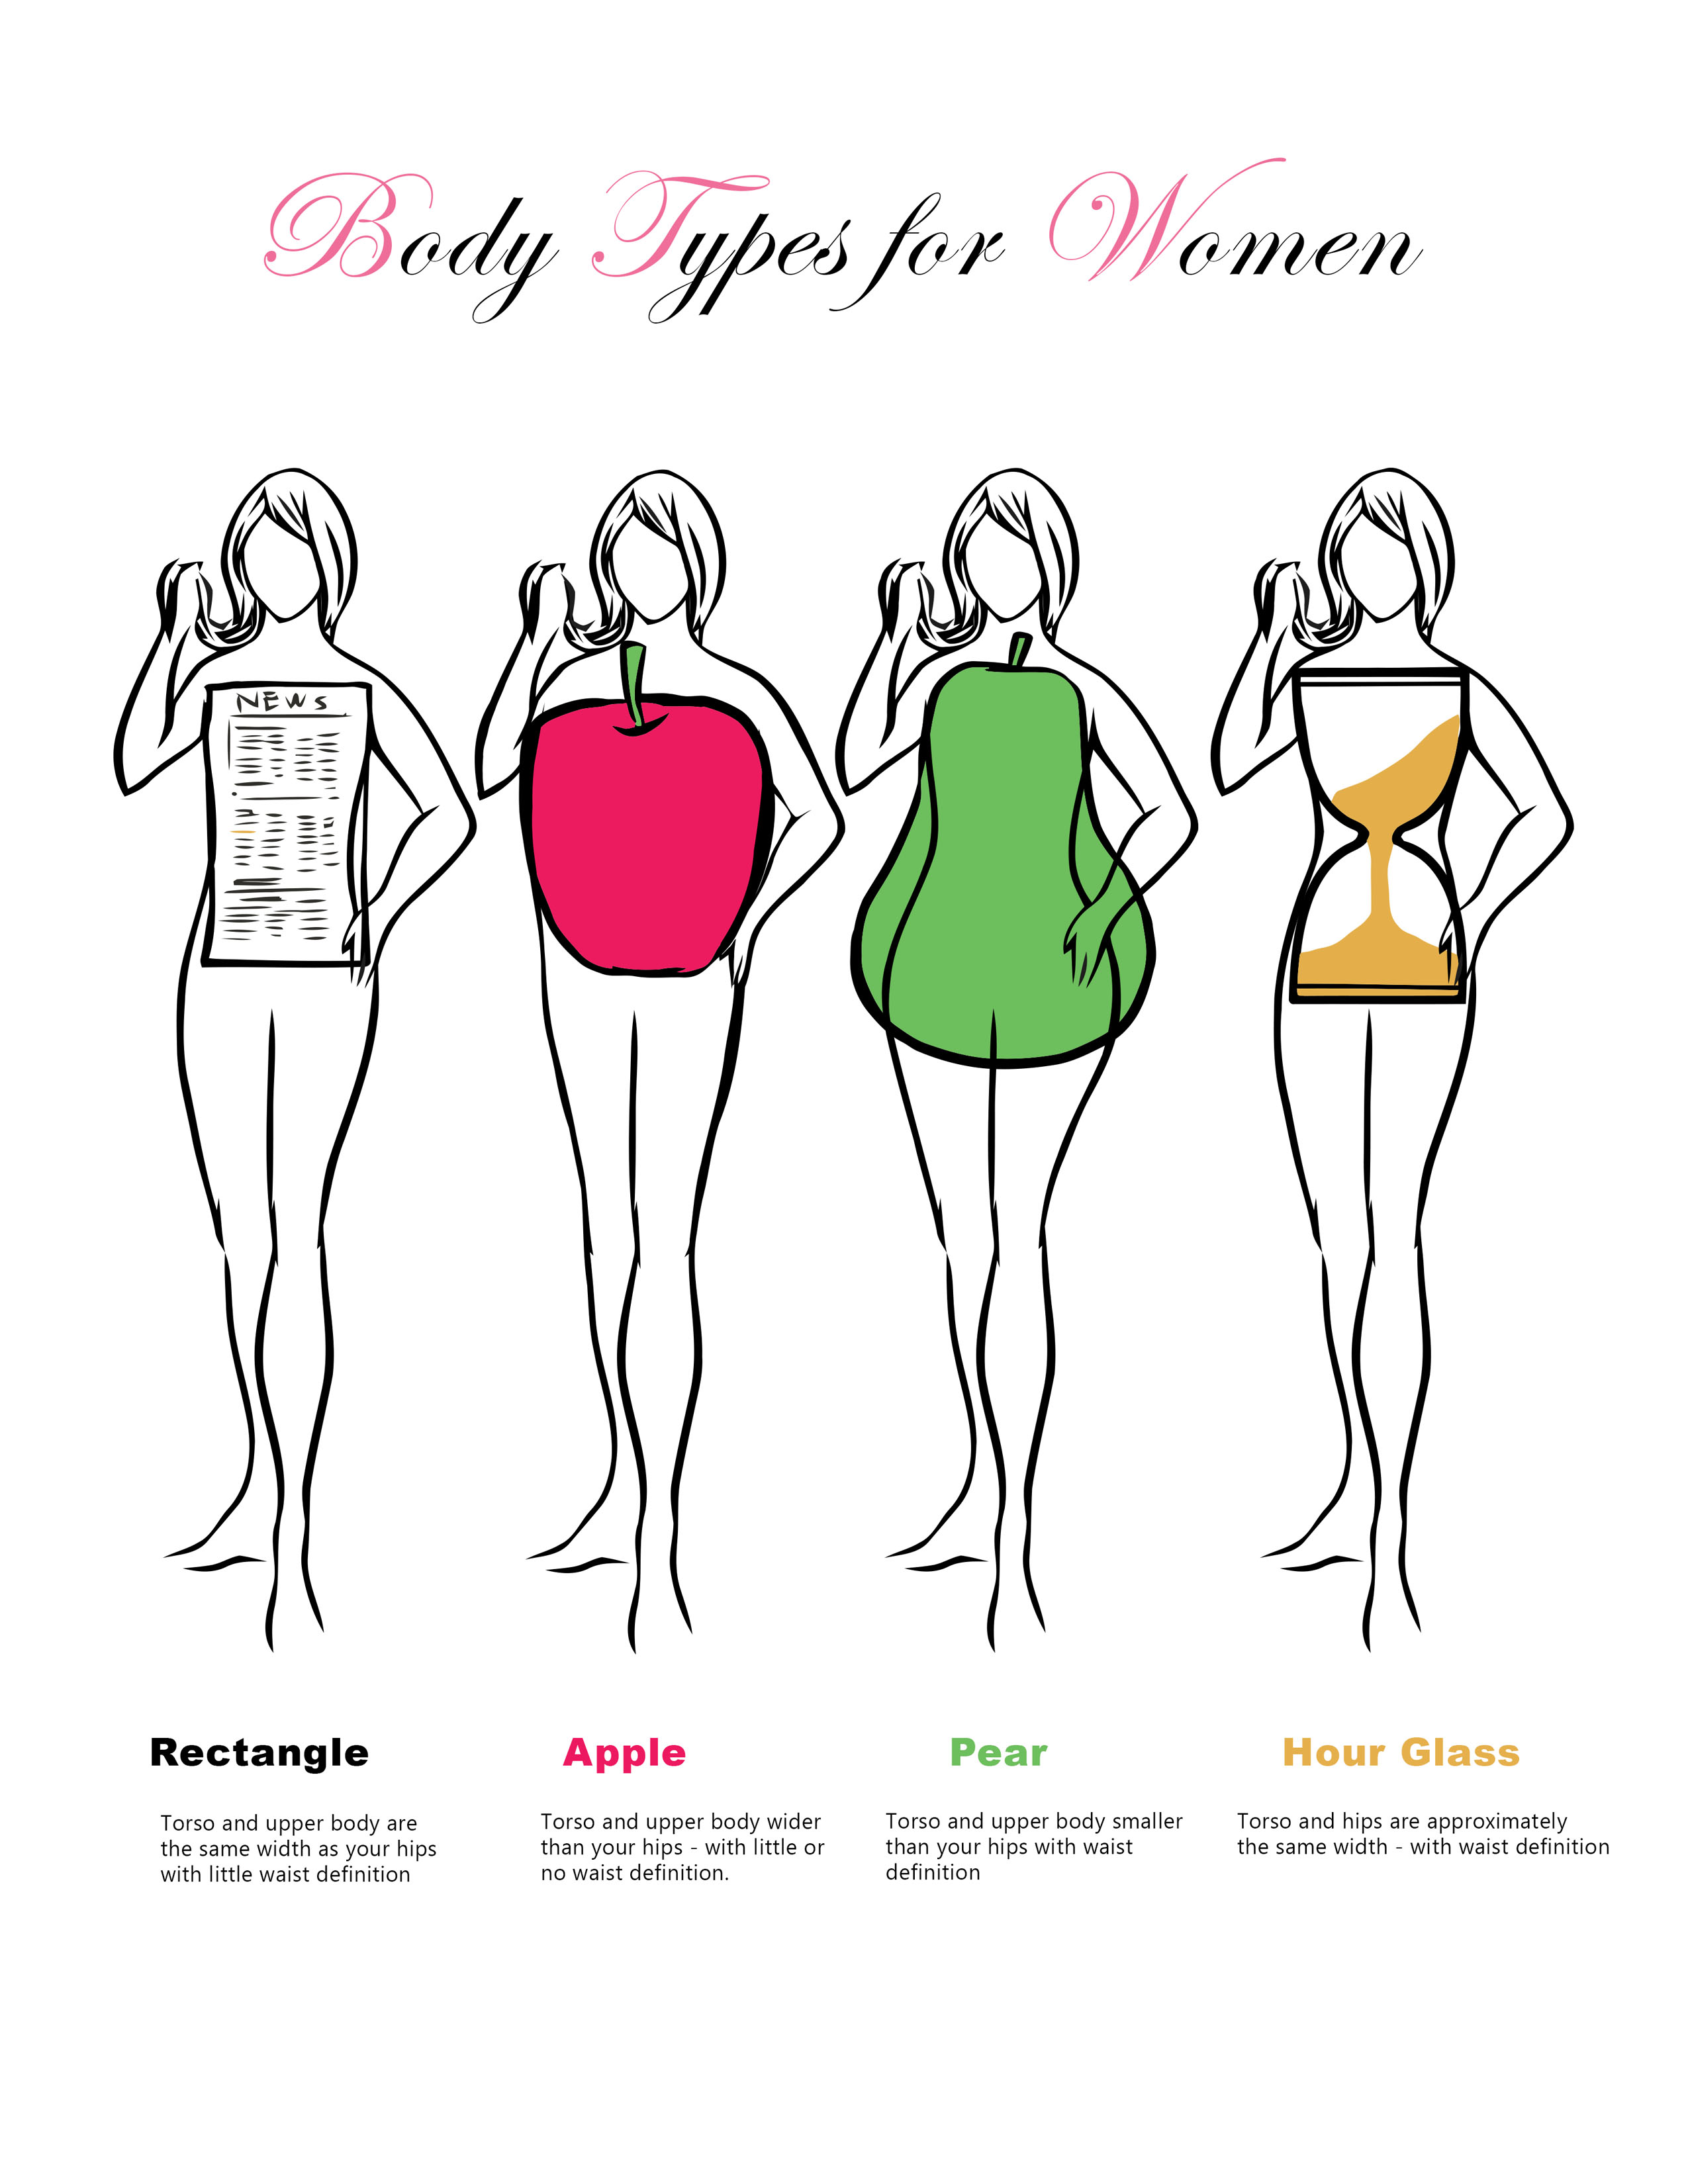 Body types chart for women you can download and print.